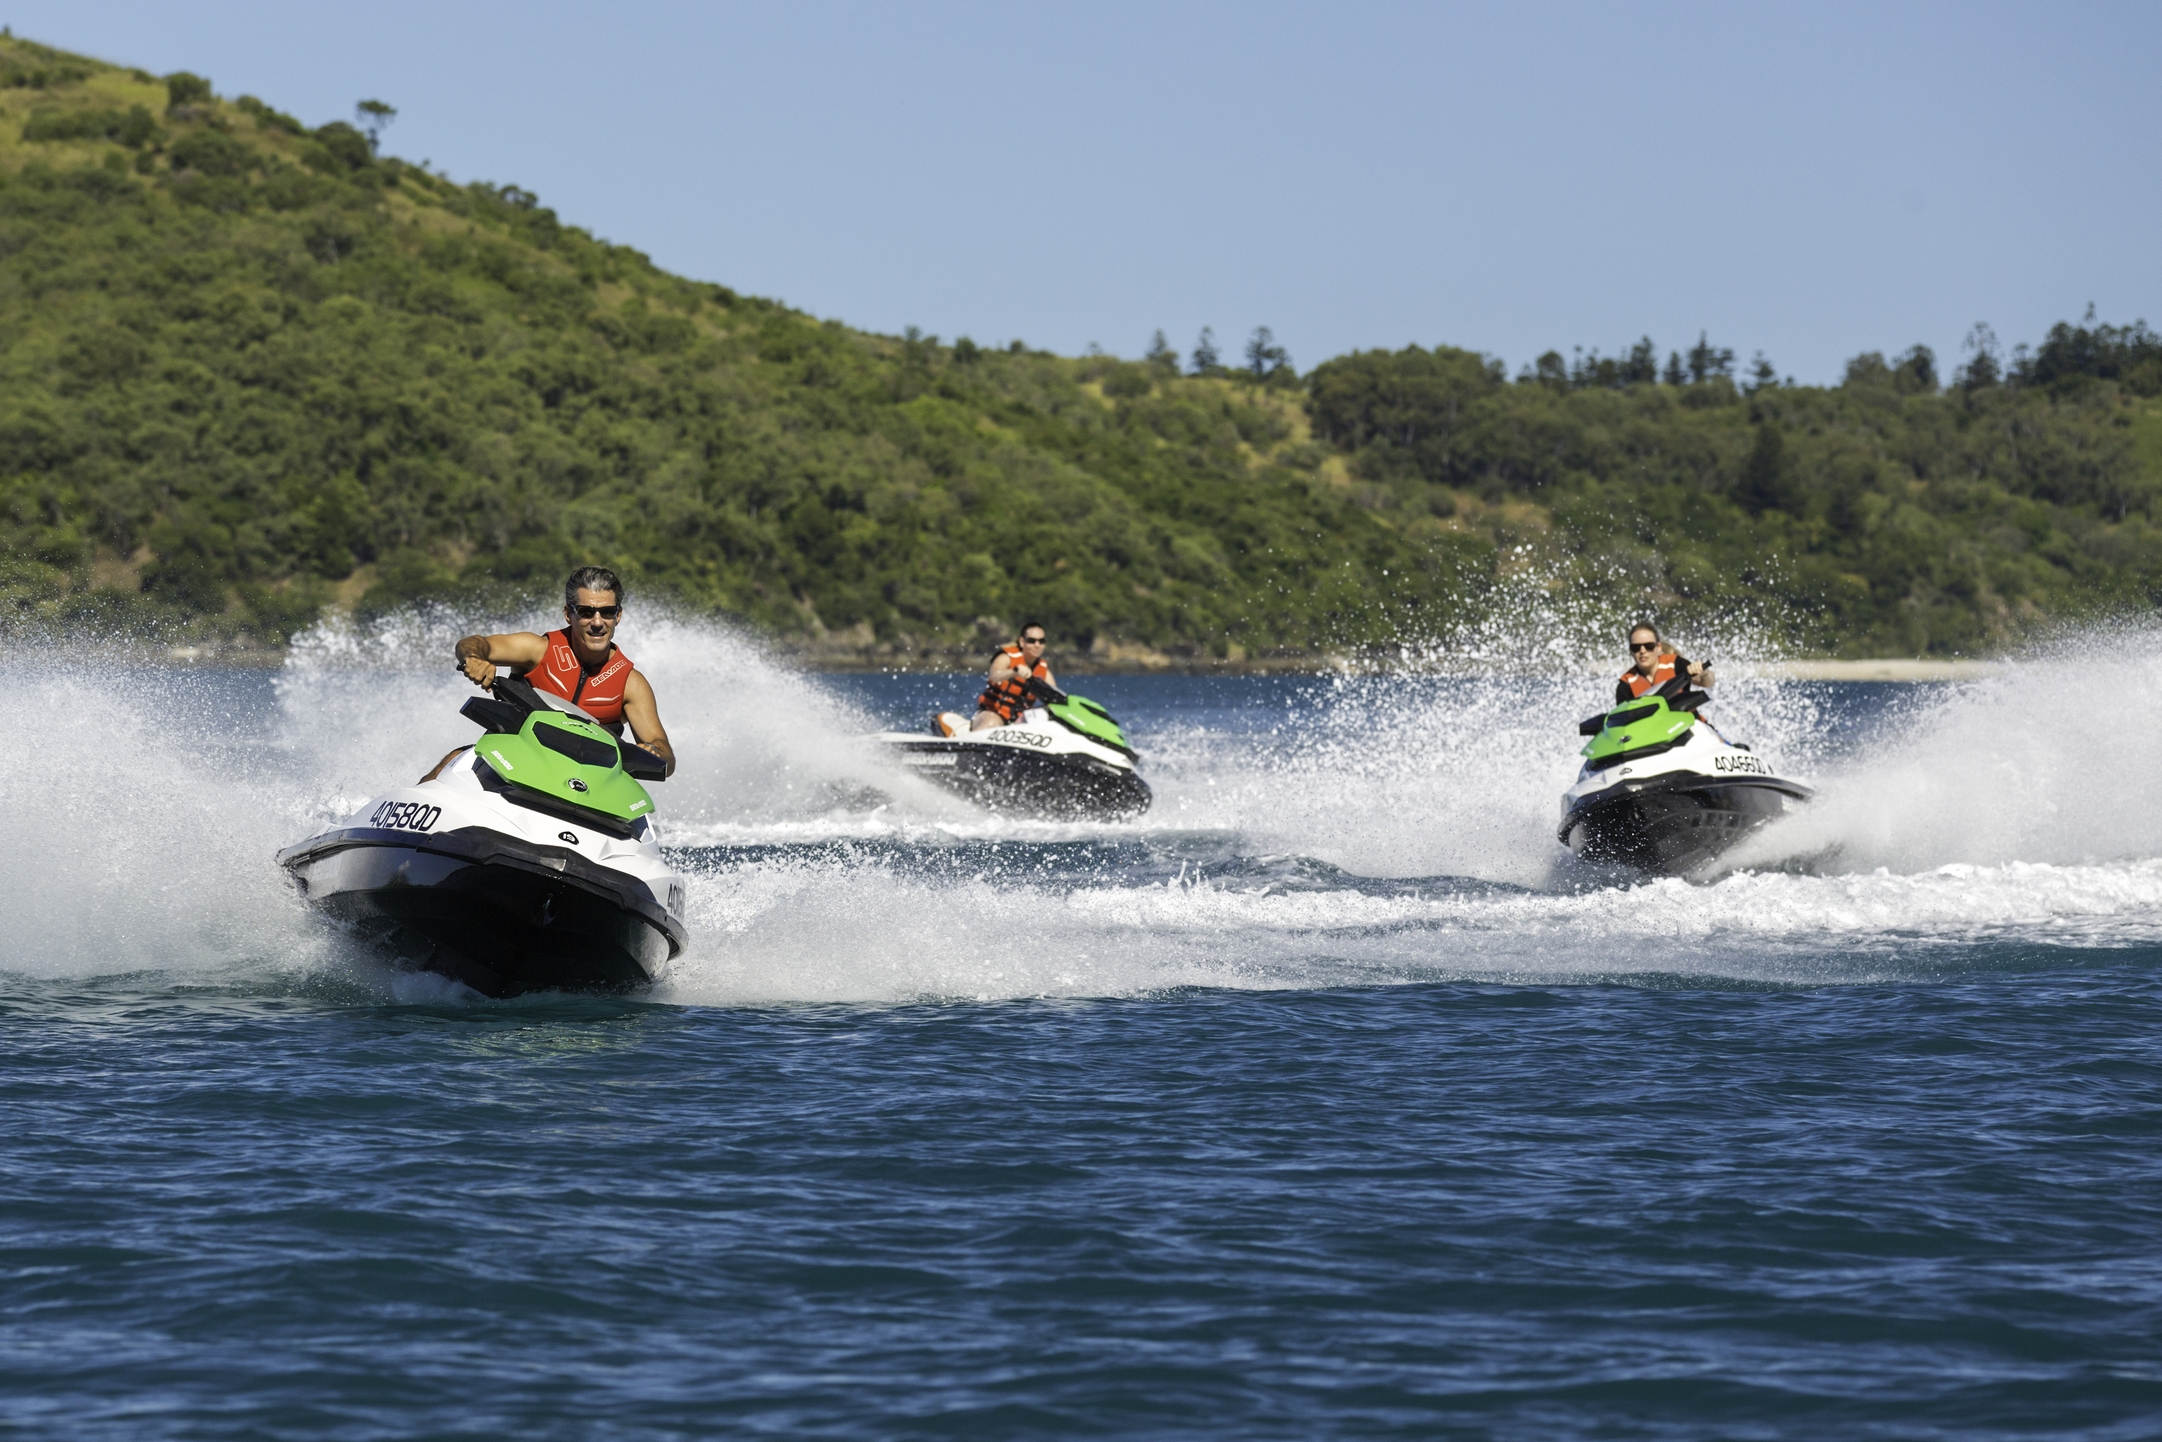 RIDE AND RAFT COMBO 2 - JETSKI AND OCEAN RAFTING PACKAGE